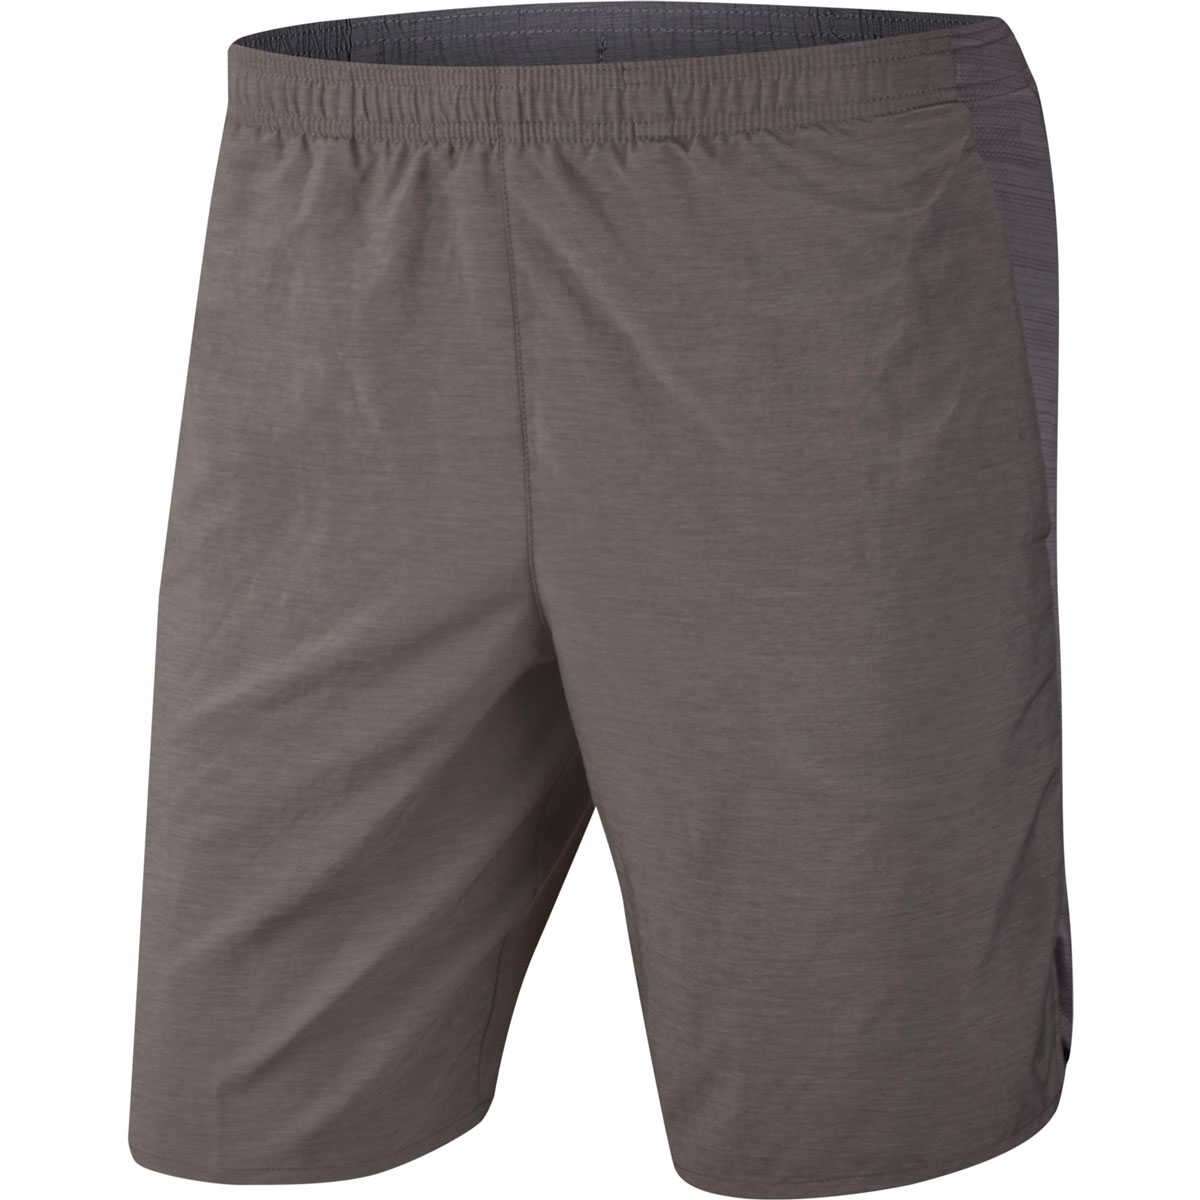 """Men's 9"""" Brief-Lined Running Shorts, Heather Gray, swatch"""